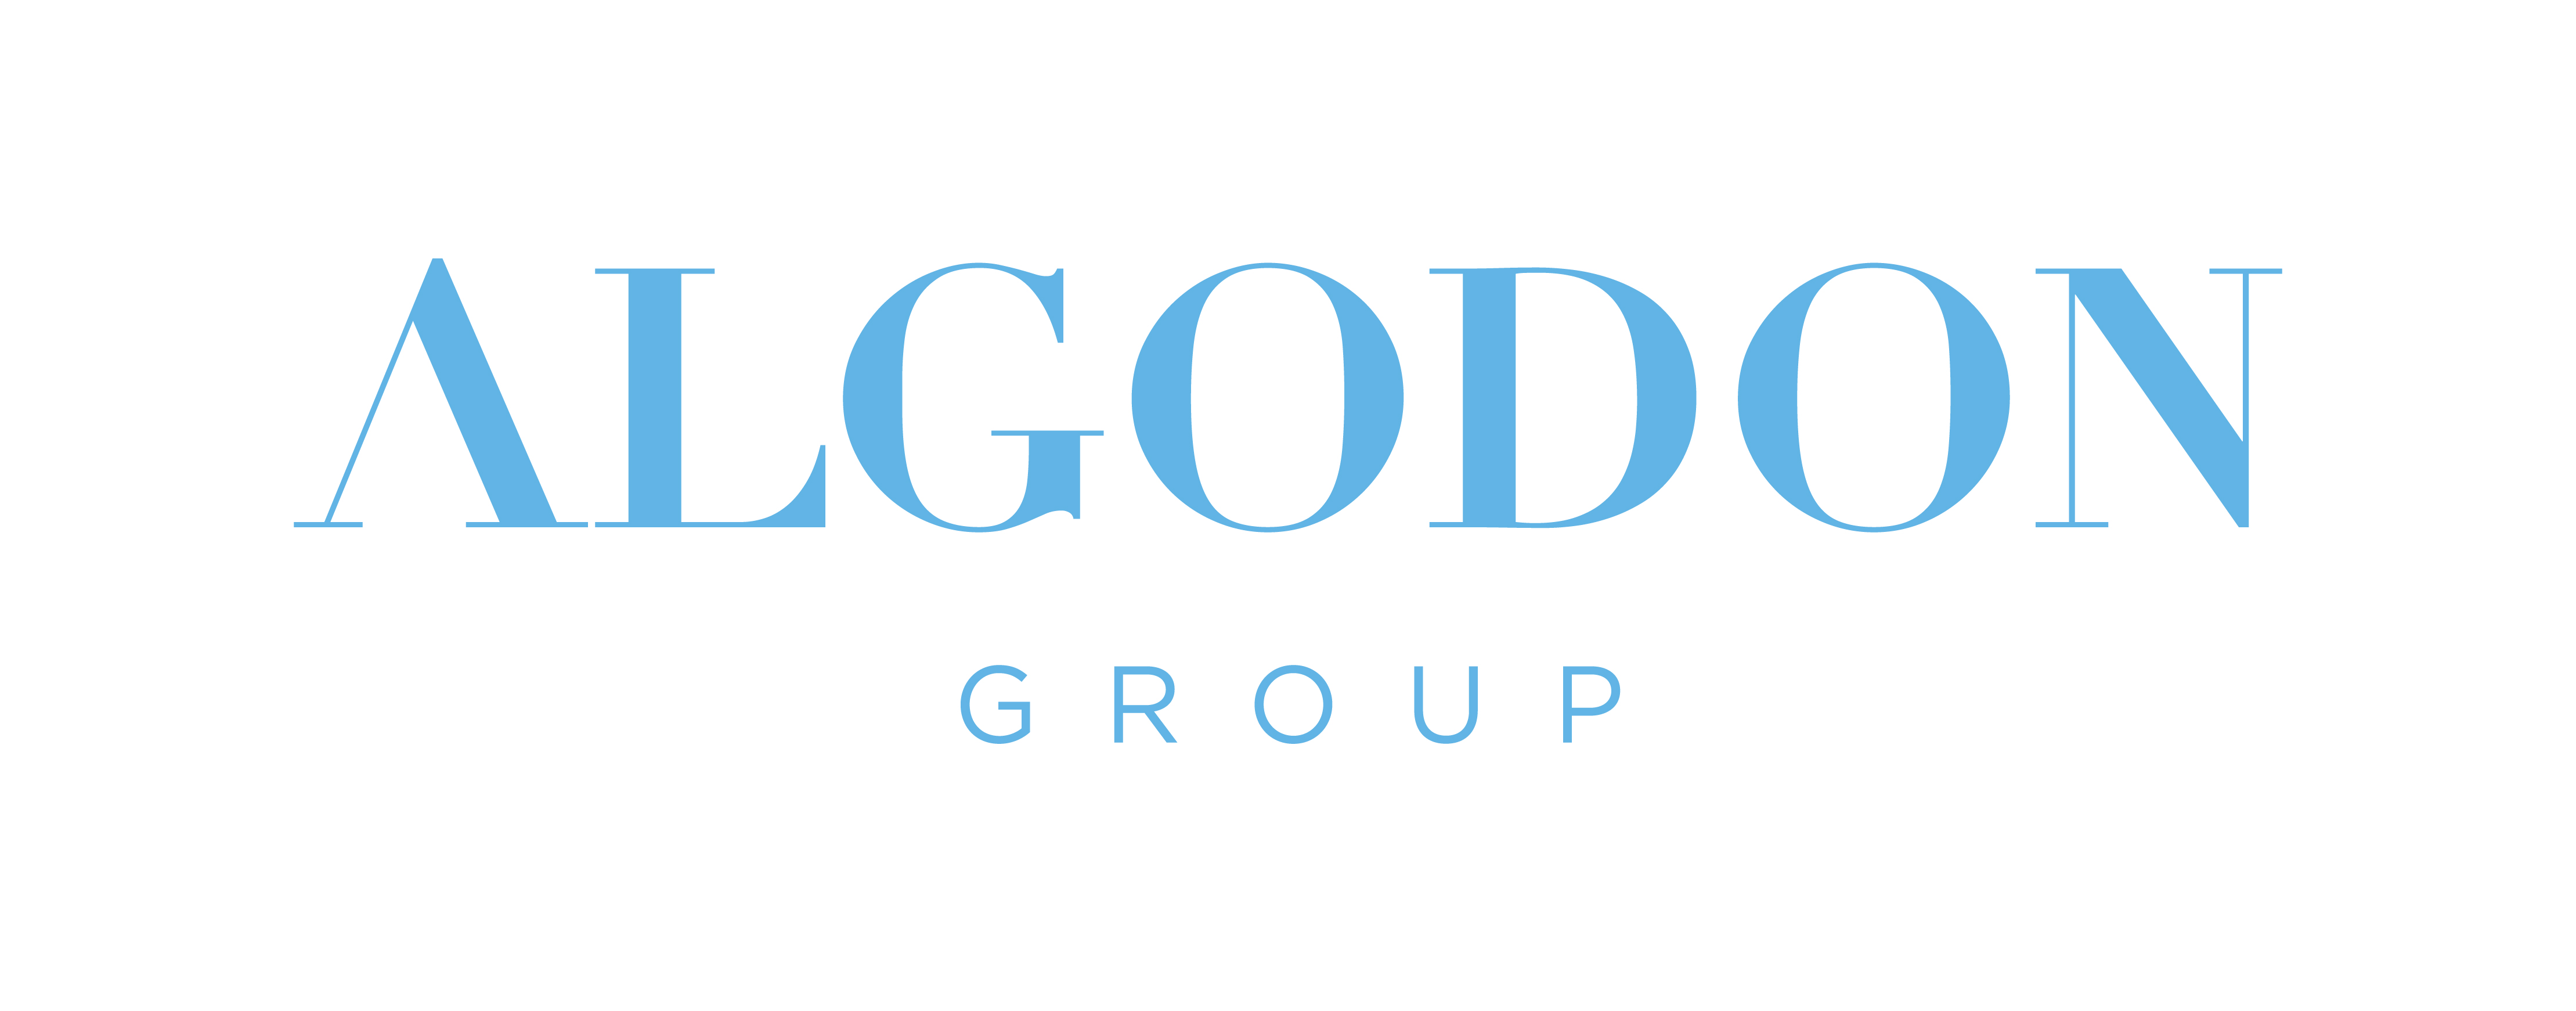 Algodon Group Logo_LV Blue.jpg